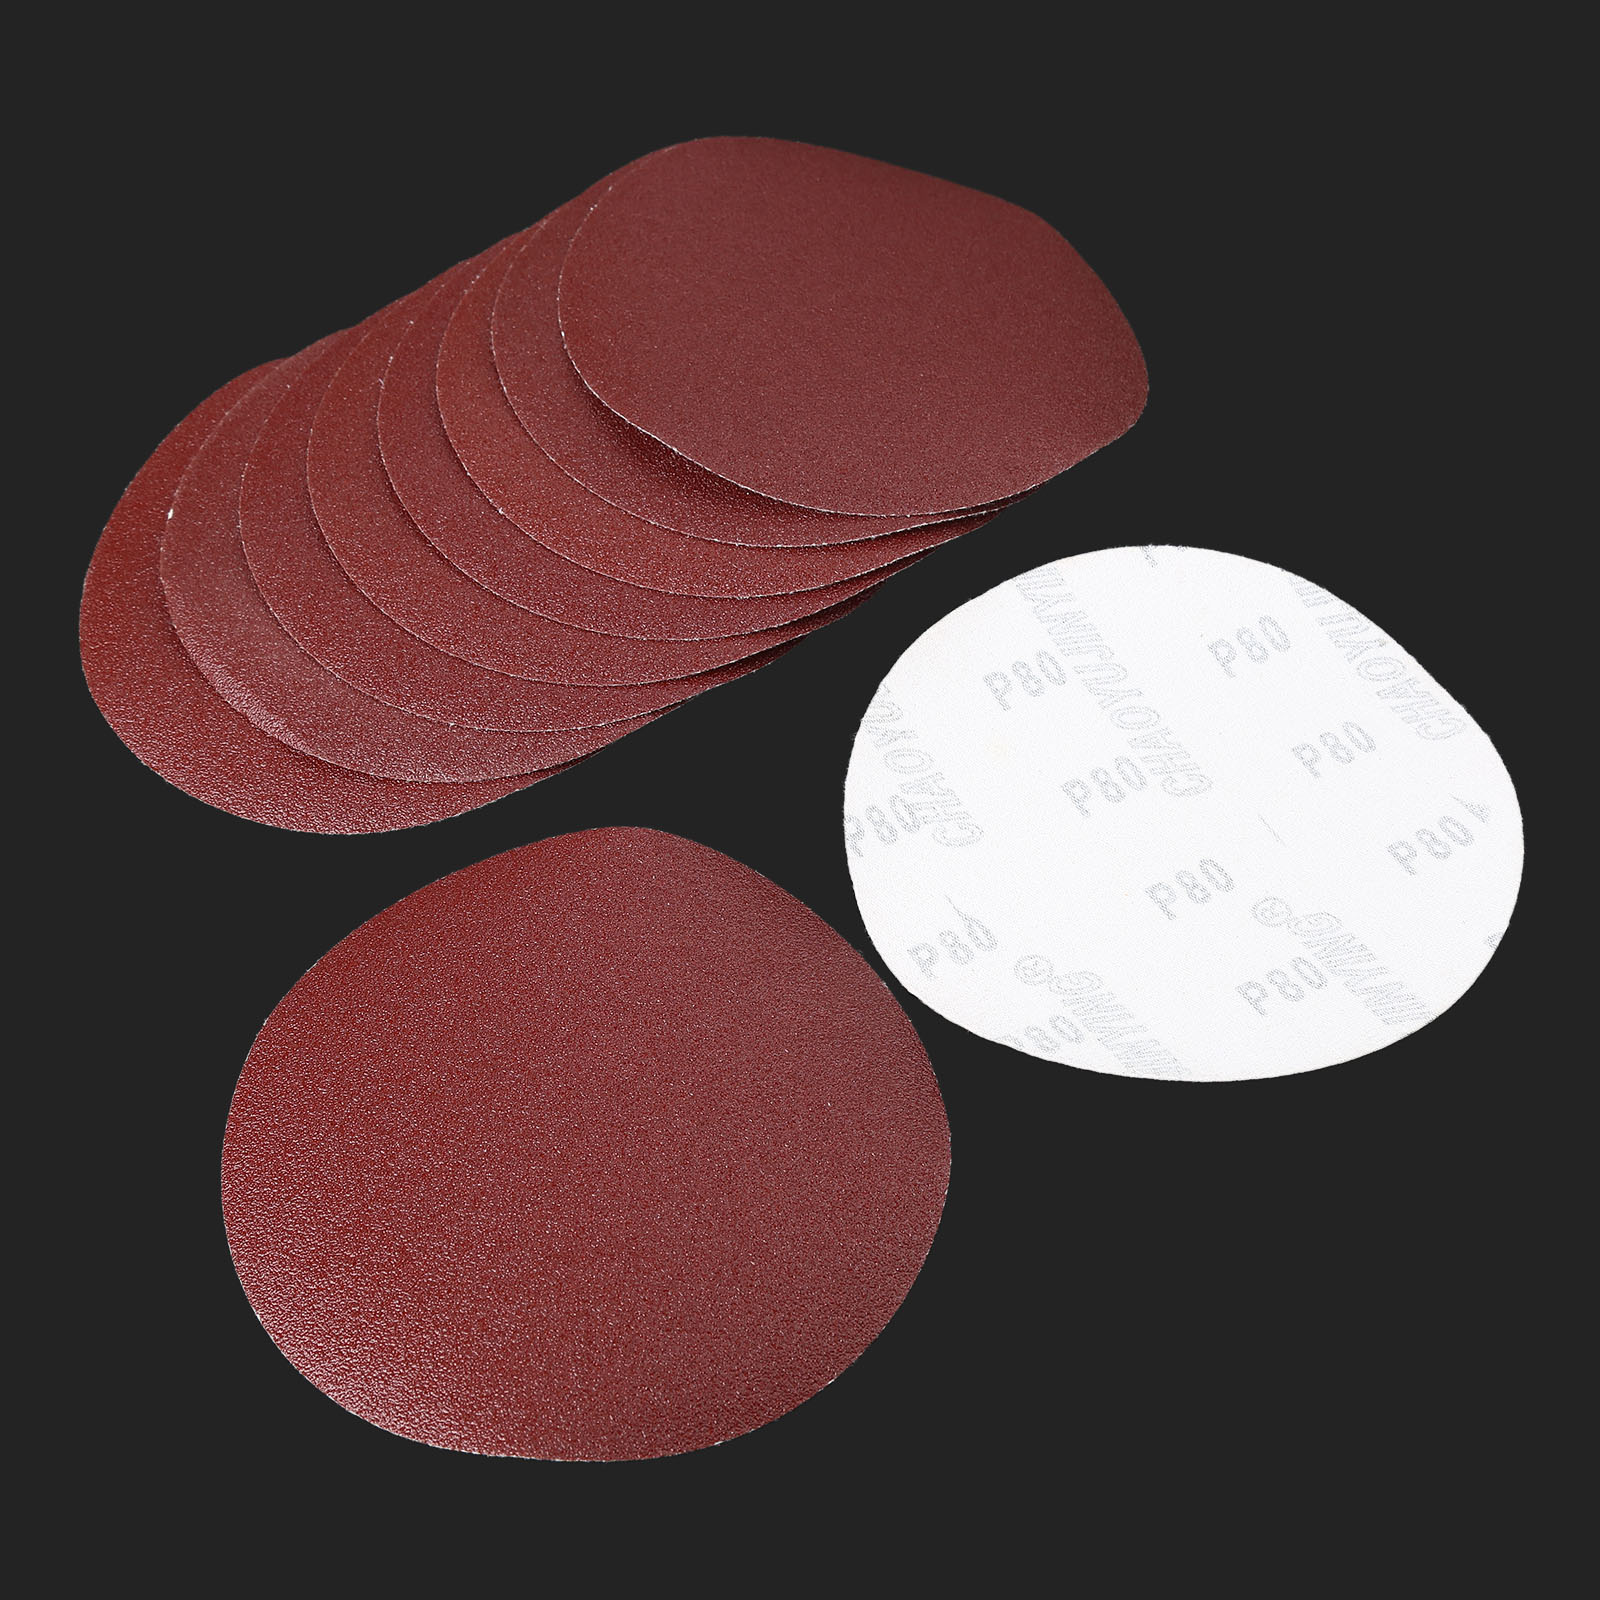 10Pcs 6inch 150mm Round Sanding Disc Sandpaper Disk Sand Sheets Grit 80/120/240 Hook & Loop Polishing Pad For Sander Grits